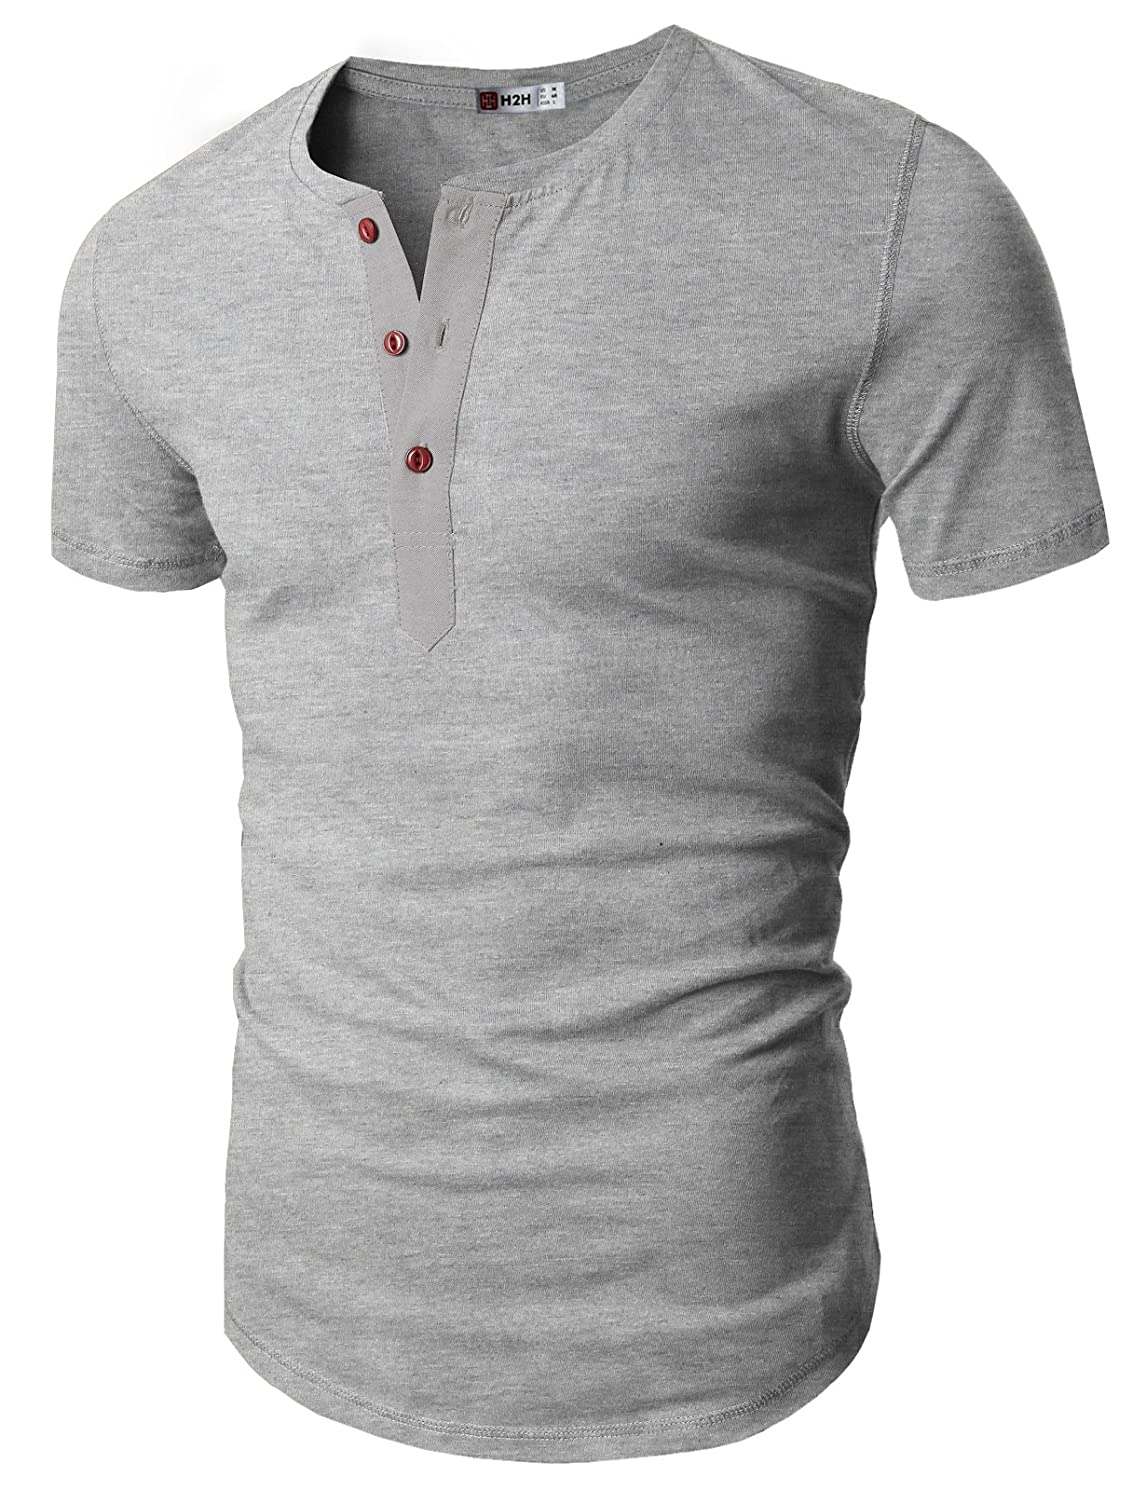 H2H Men's Casual Slim Fit Henley Shirts Summer Clothes Cotton Blended Basic Designed